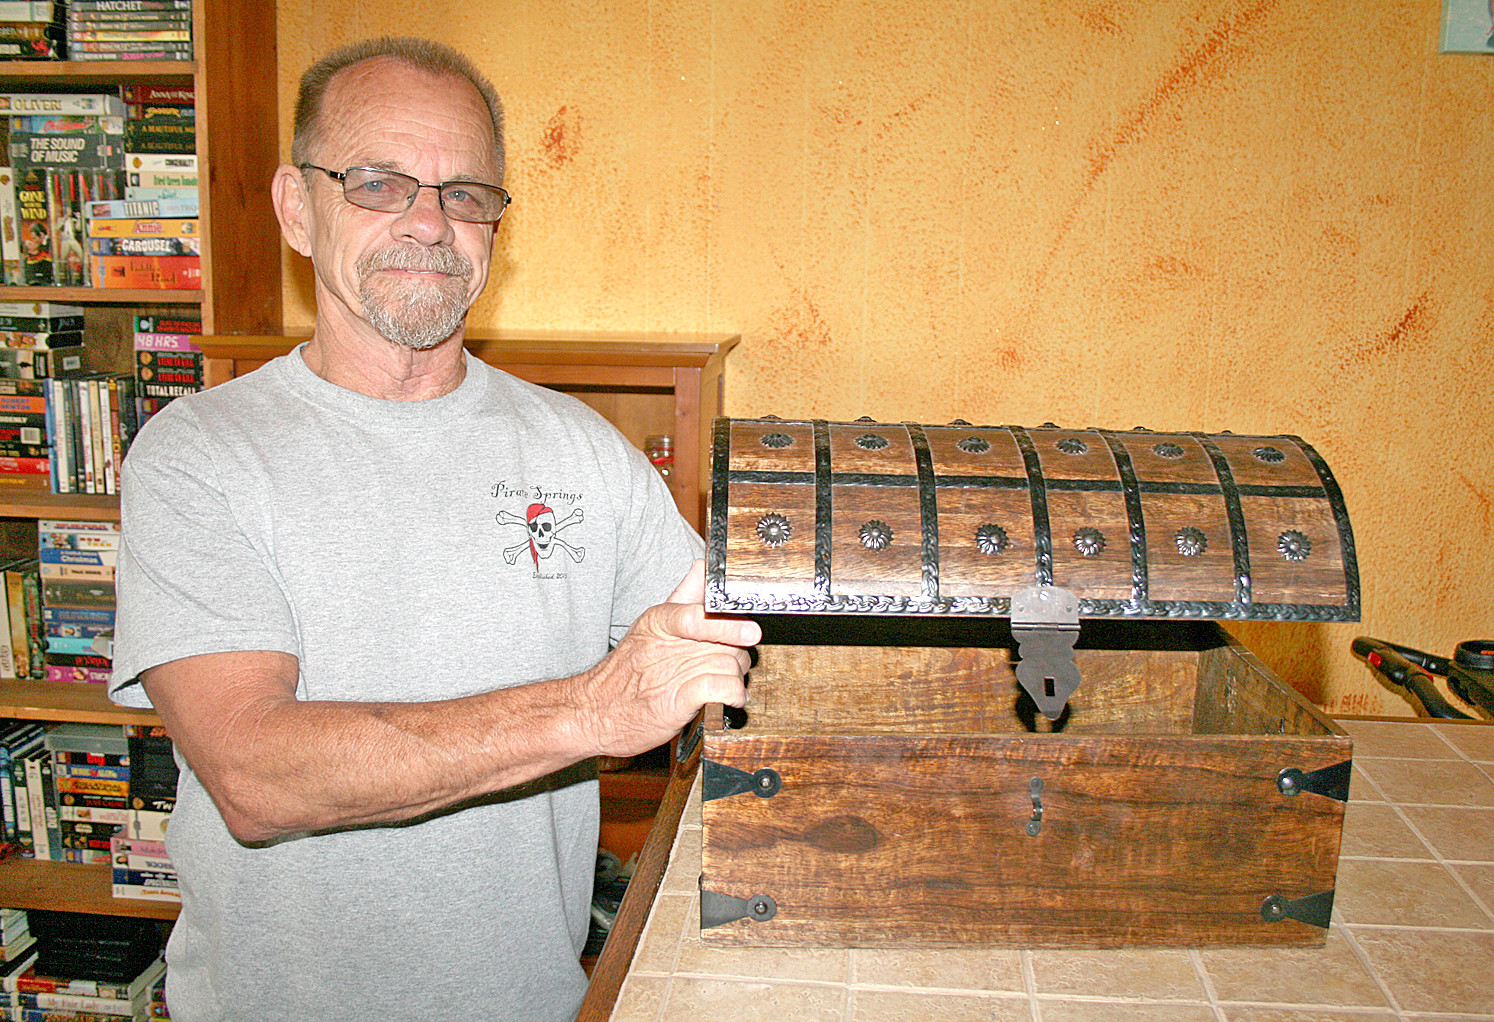 PAUL HOOK stands with a treasure chest, one of the numerous pirate-themed items that adorn the halls of Pirate Springs. Hook said he's trying to spread awareness of the program and its importance to the area, as him and his wife, Julie, have both been affected by addiction and feel led by God to aid those who suffer from it.